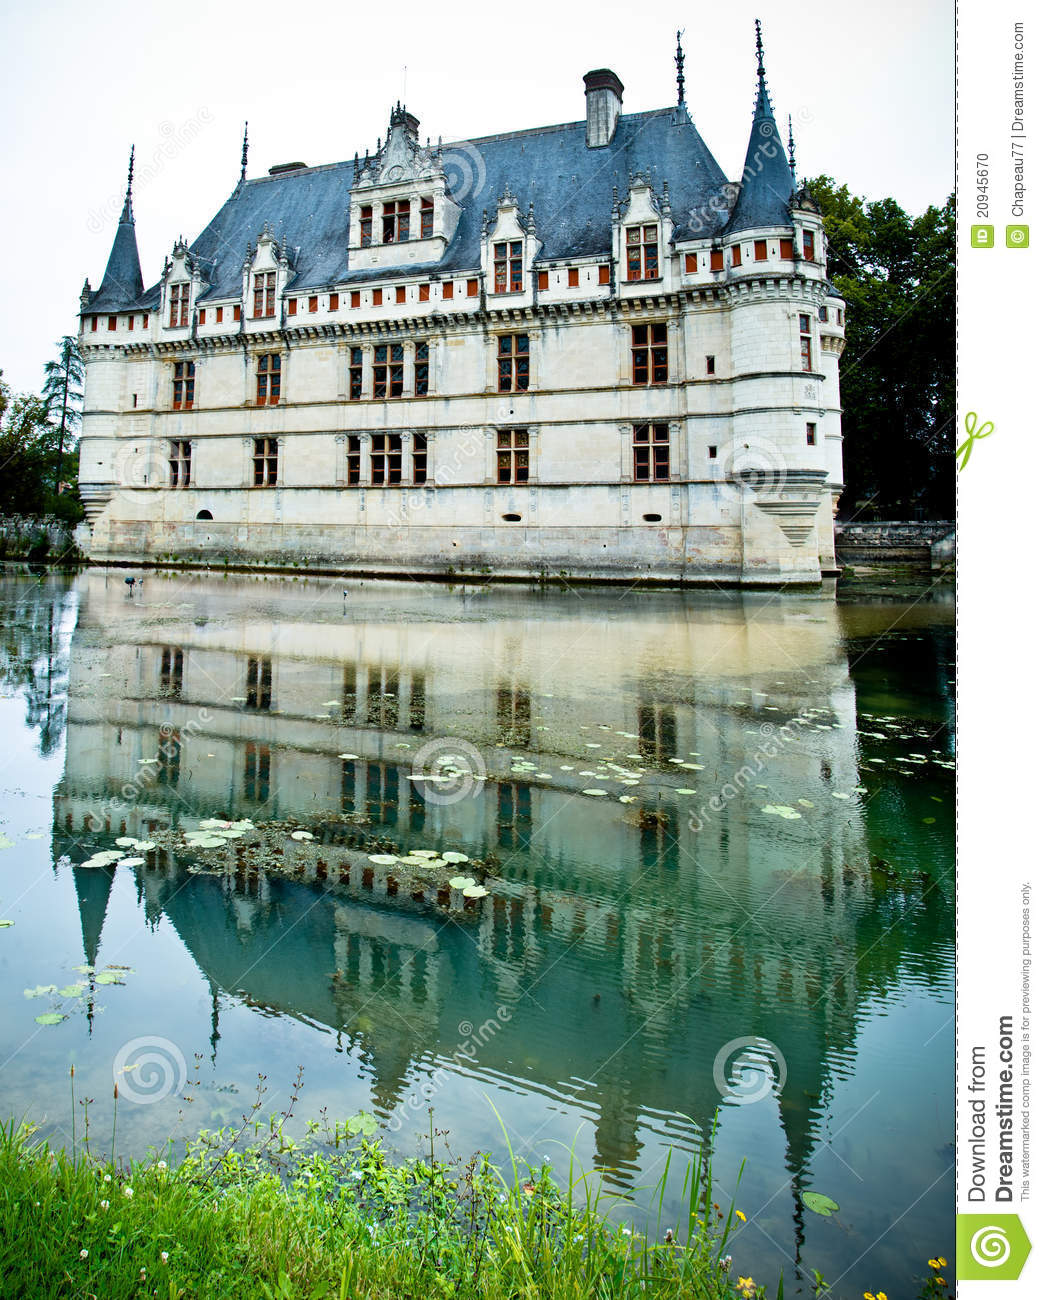 azay le rideau castle reflected in the water stock photo. Black Bedroom Furniture Sets. Home Design Ideas